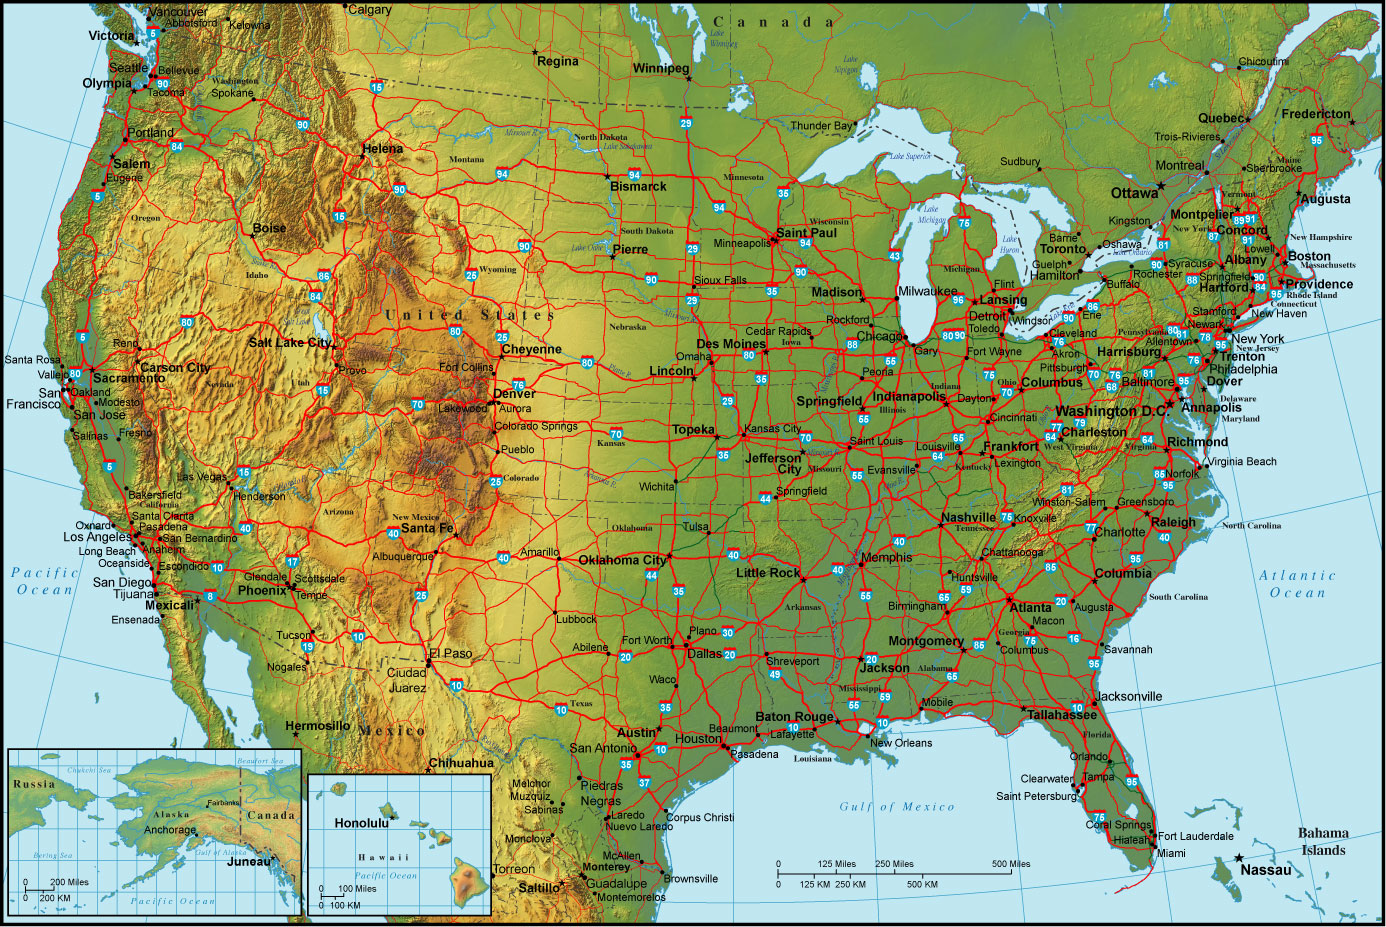 Maps Canada Usa Map United States - Us map of the united states